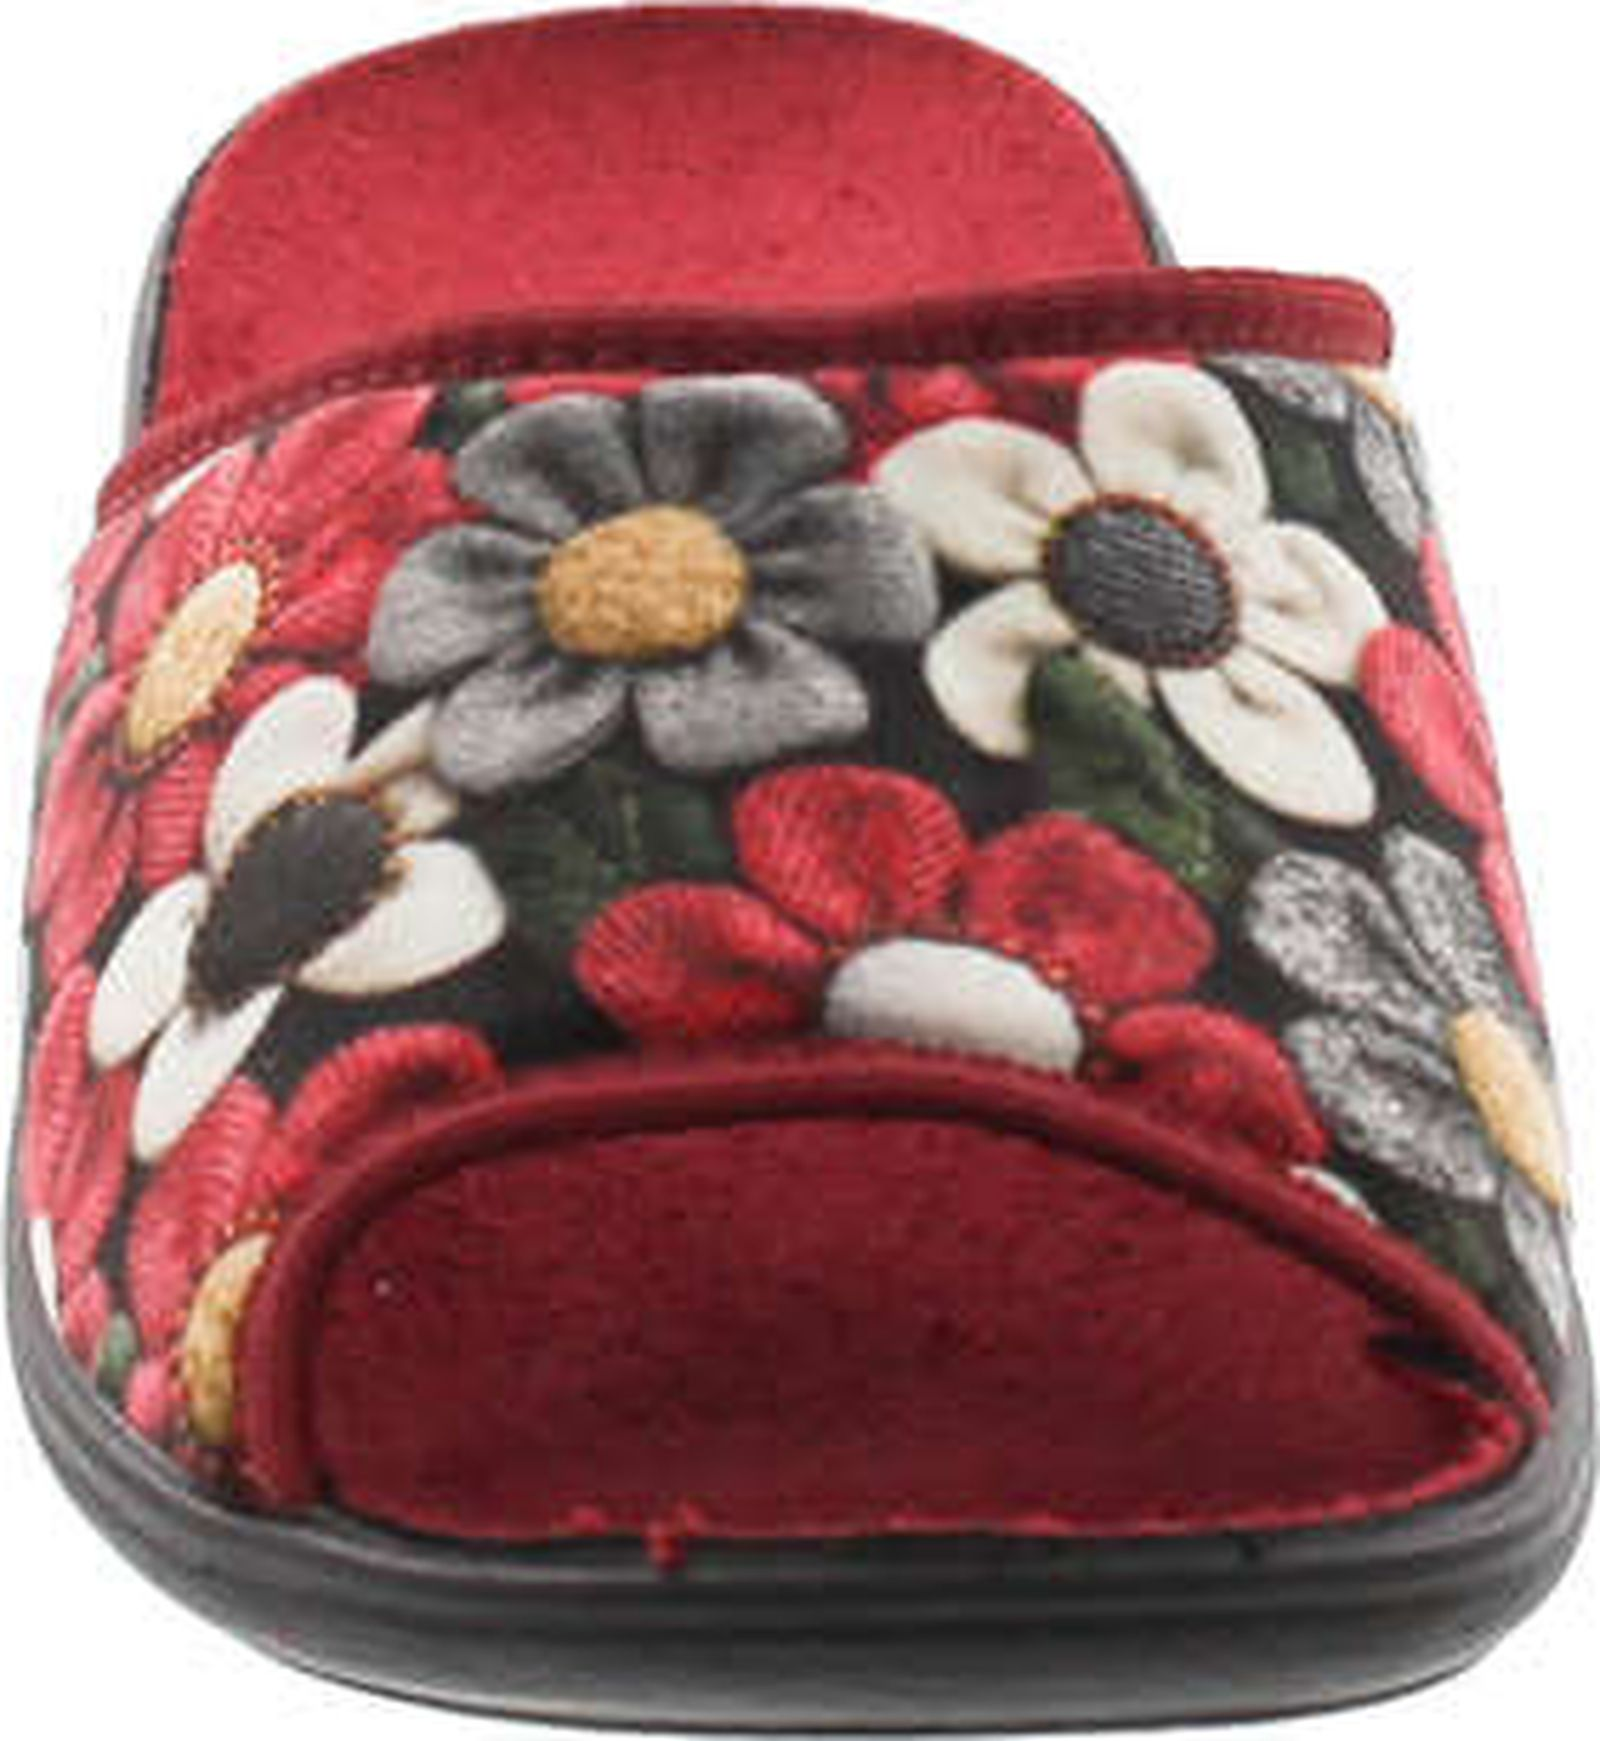 56b8a2f928 Sc Home Collection Womens 159 Open Toe Low Wedge Flower House Slippers Made  In Europe - ShoeCenter.com